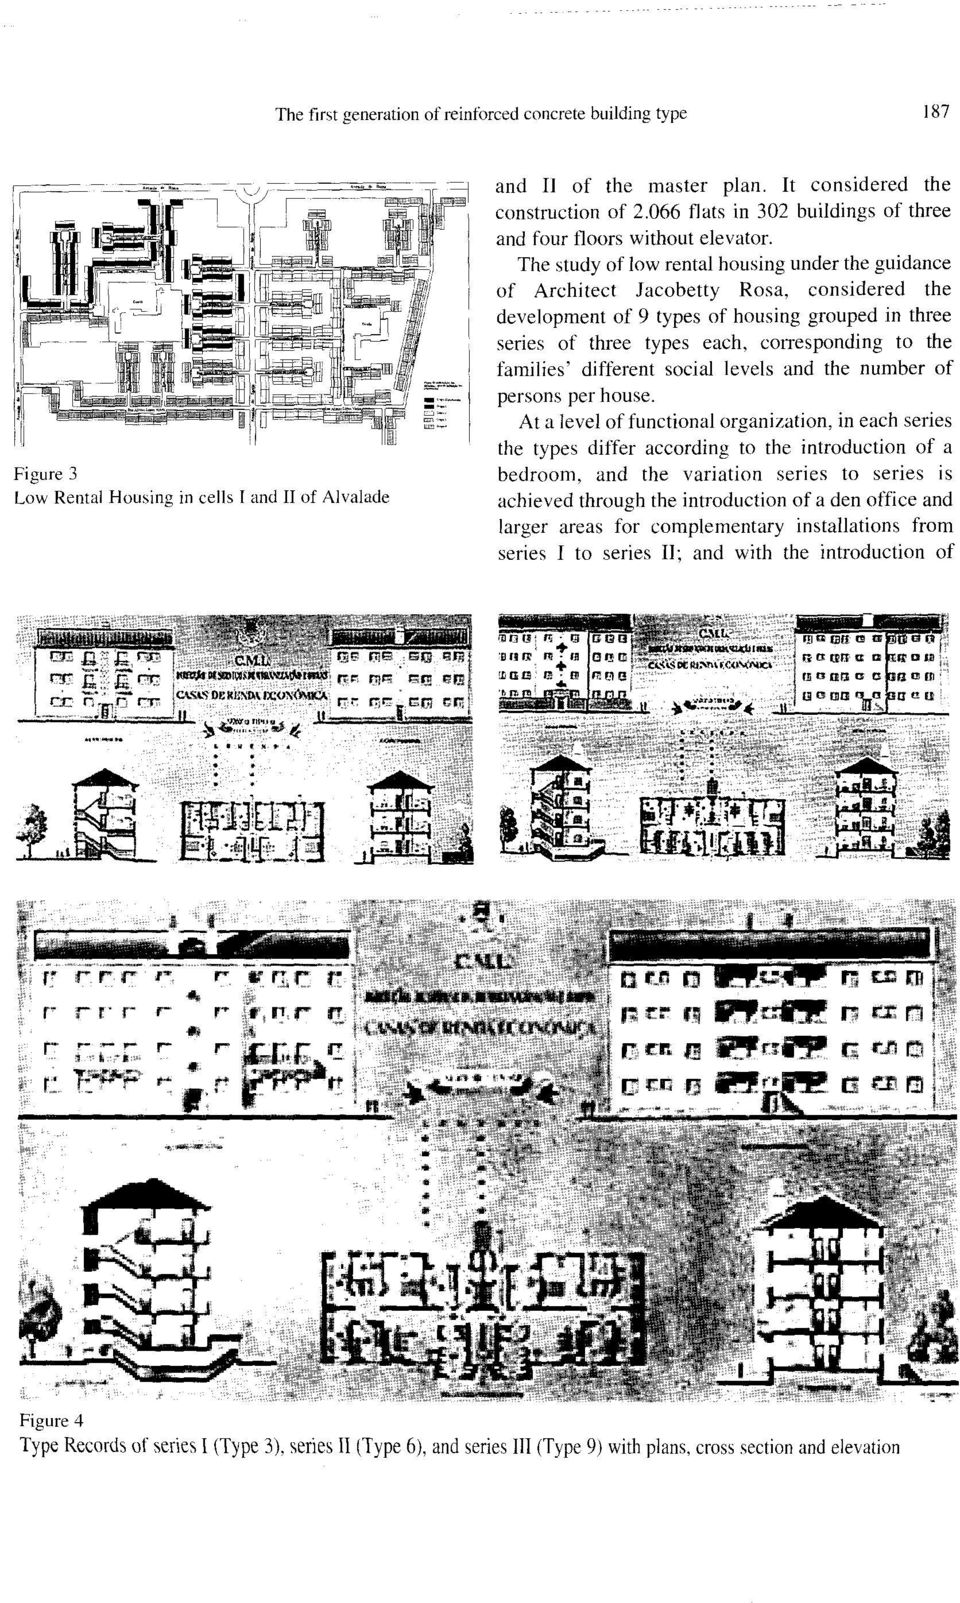 housing under the guidance of Architect Jacobetty Rosa, considered the development of 9 types of housing grouped in three series of three types each, cottesponding to the families' different social